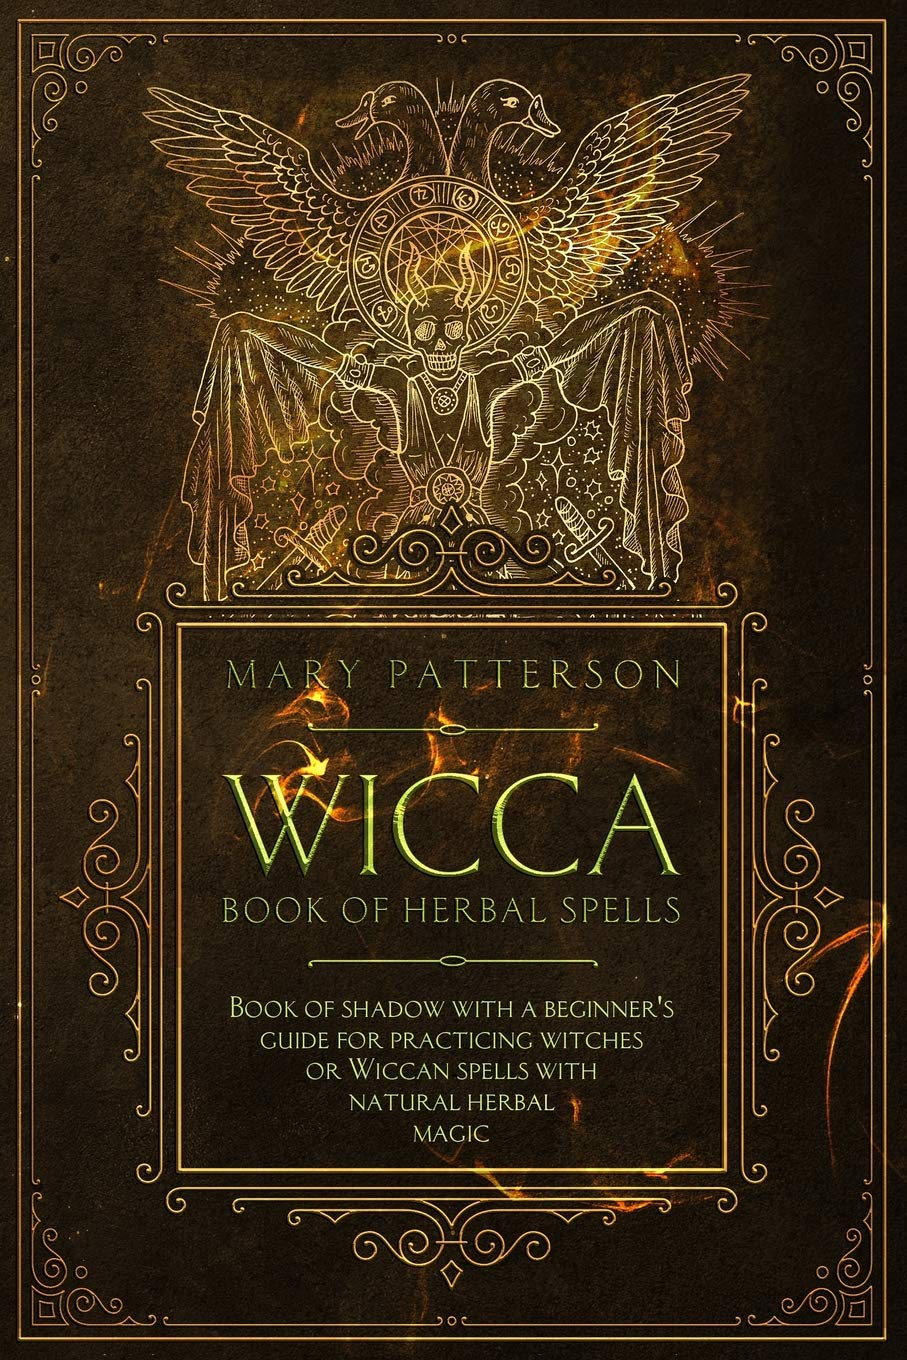 Wicca Book of Herbal Spells: Book of Shadows with a